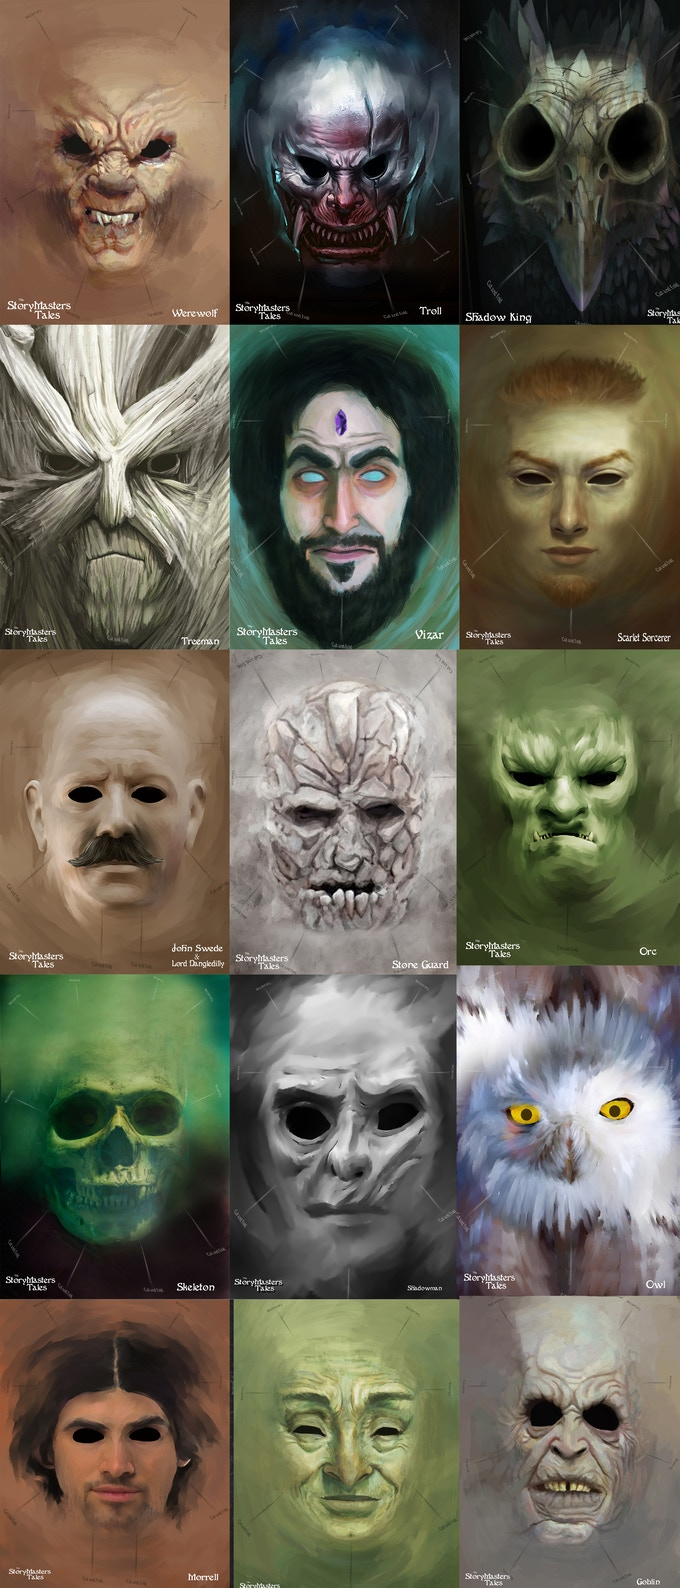 Some of the Mask Designs